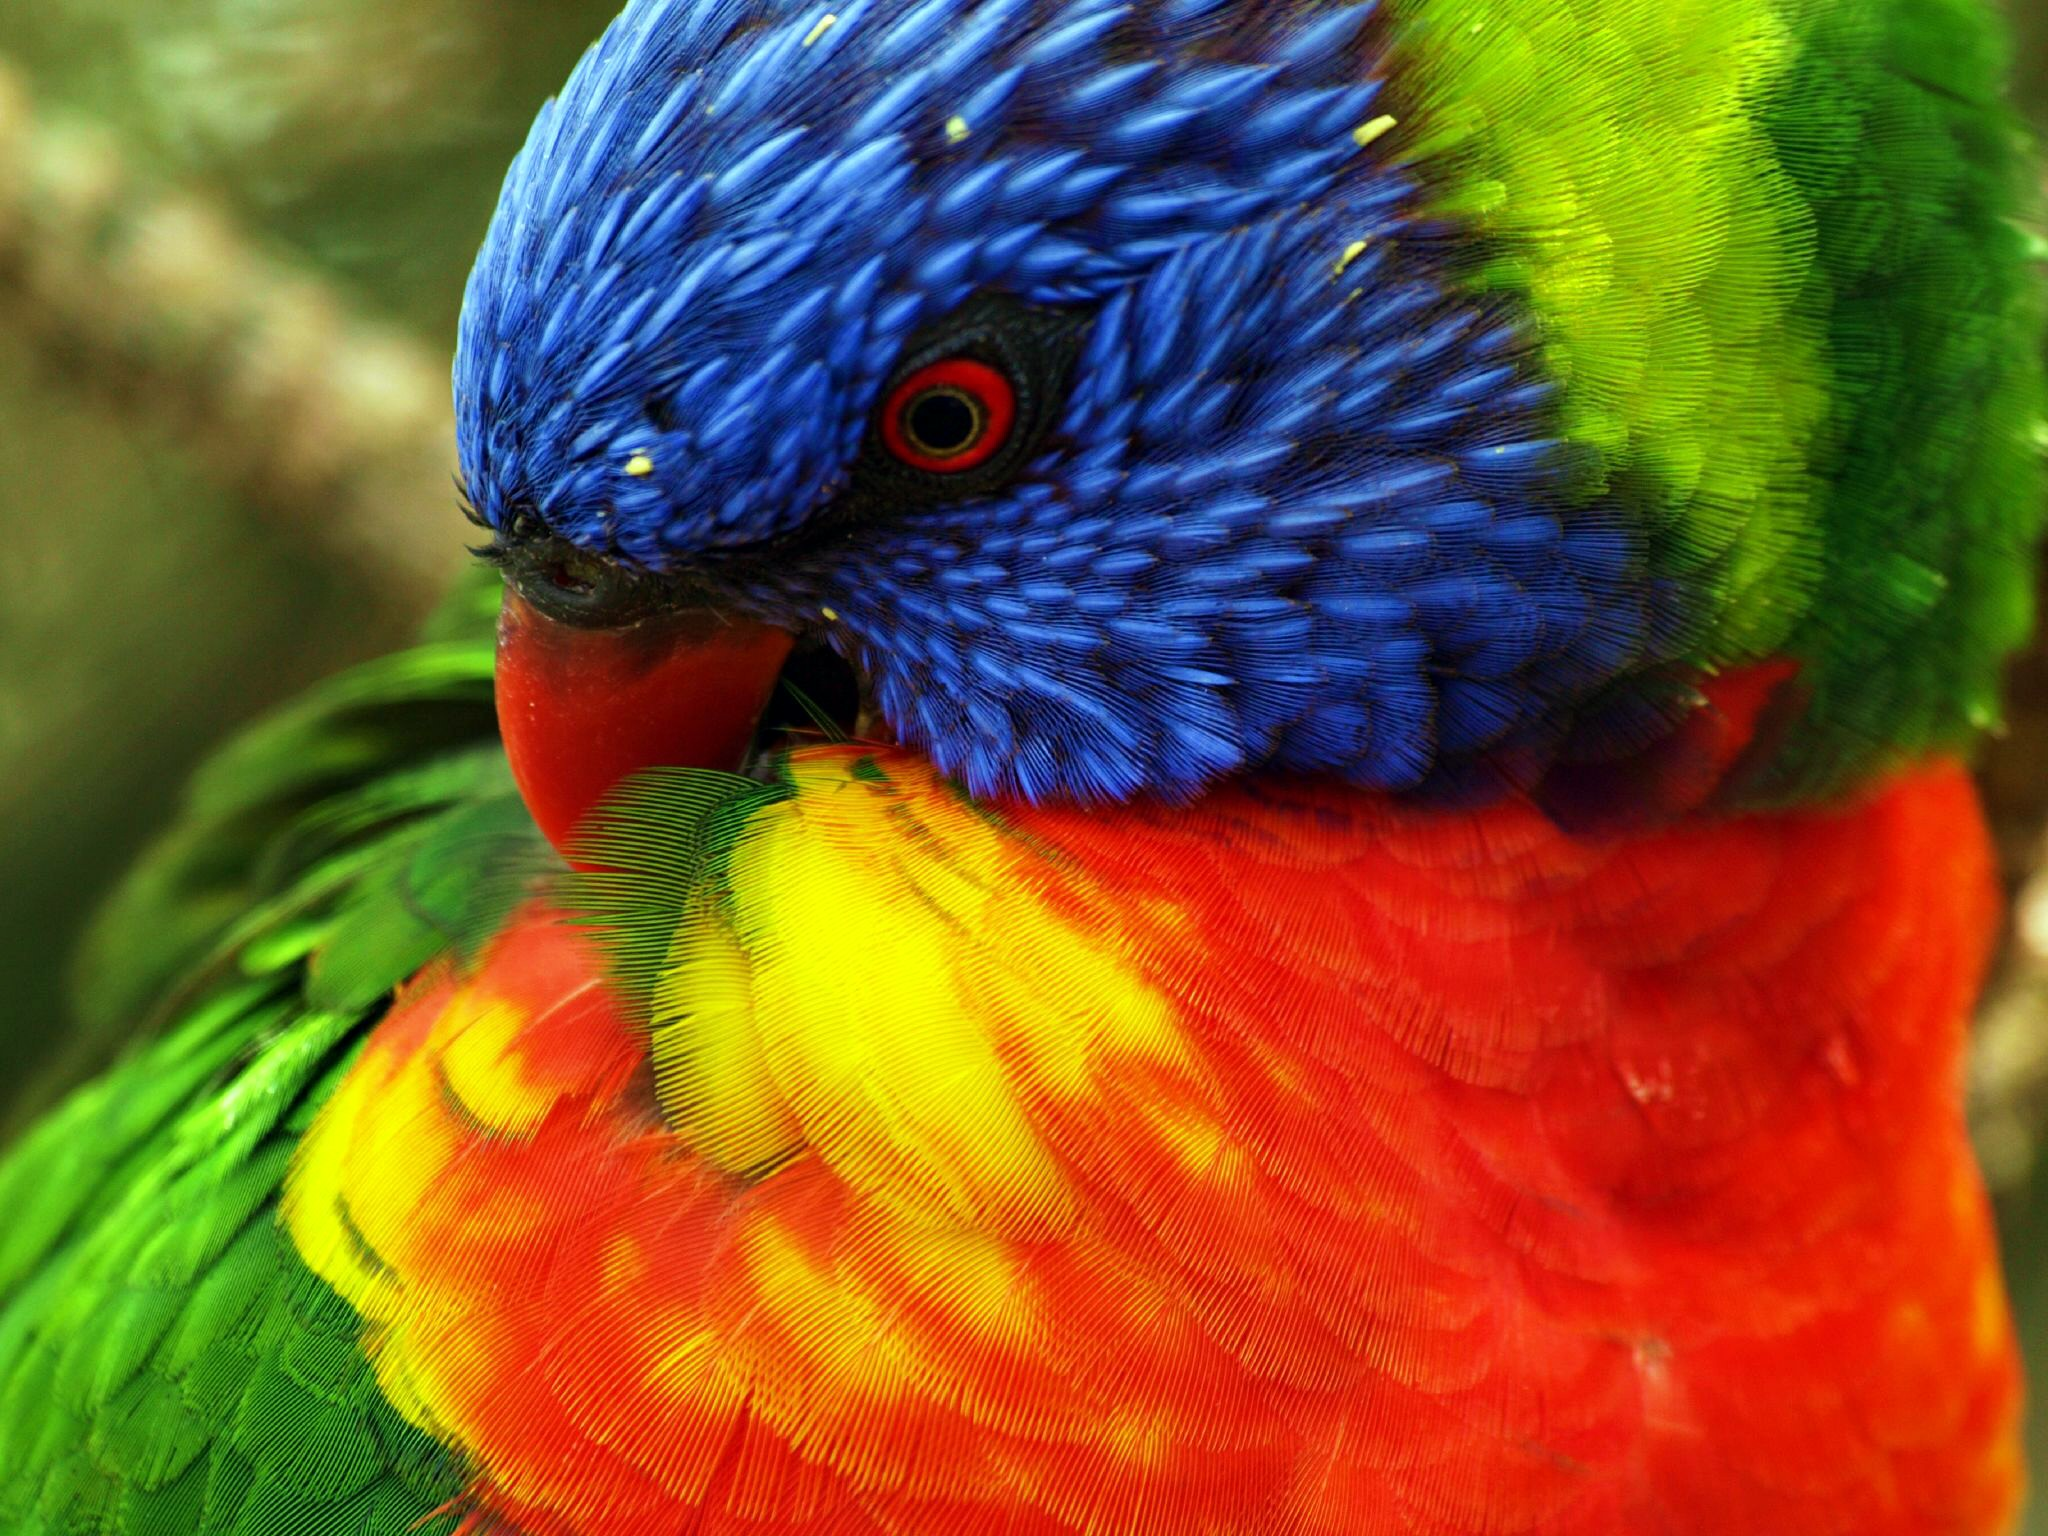 Animals birds close-up parrots rainbow lorikeet 2048x1536